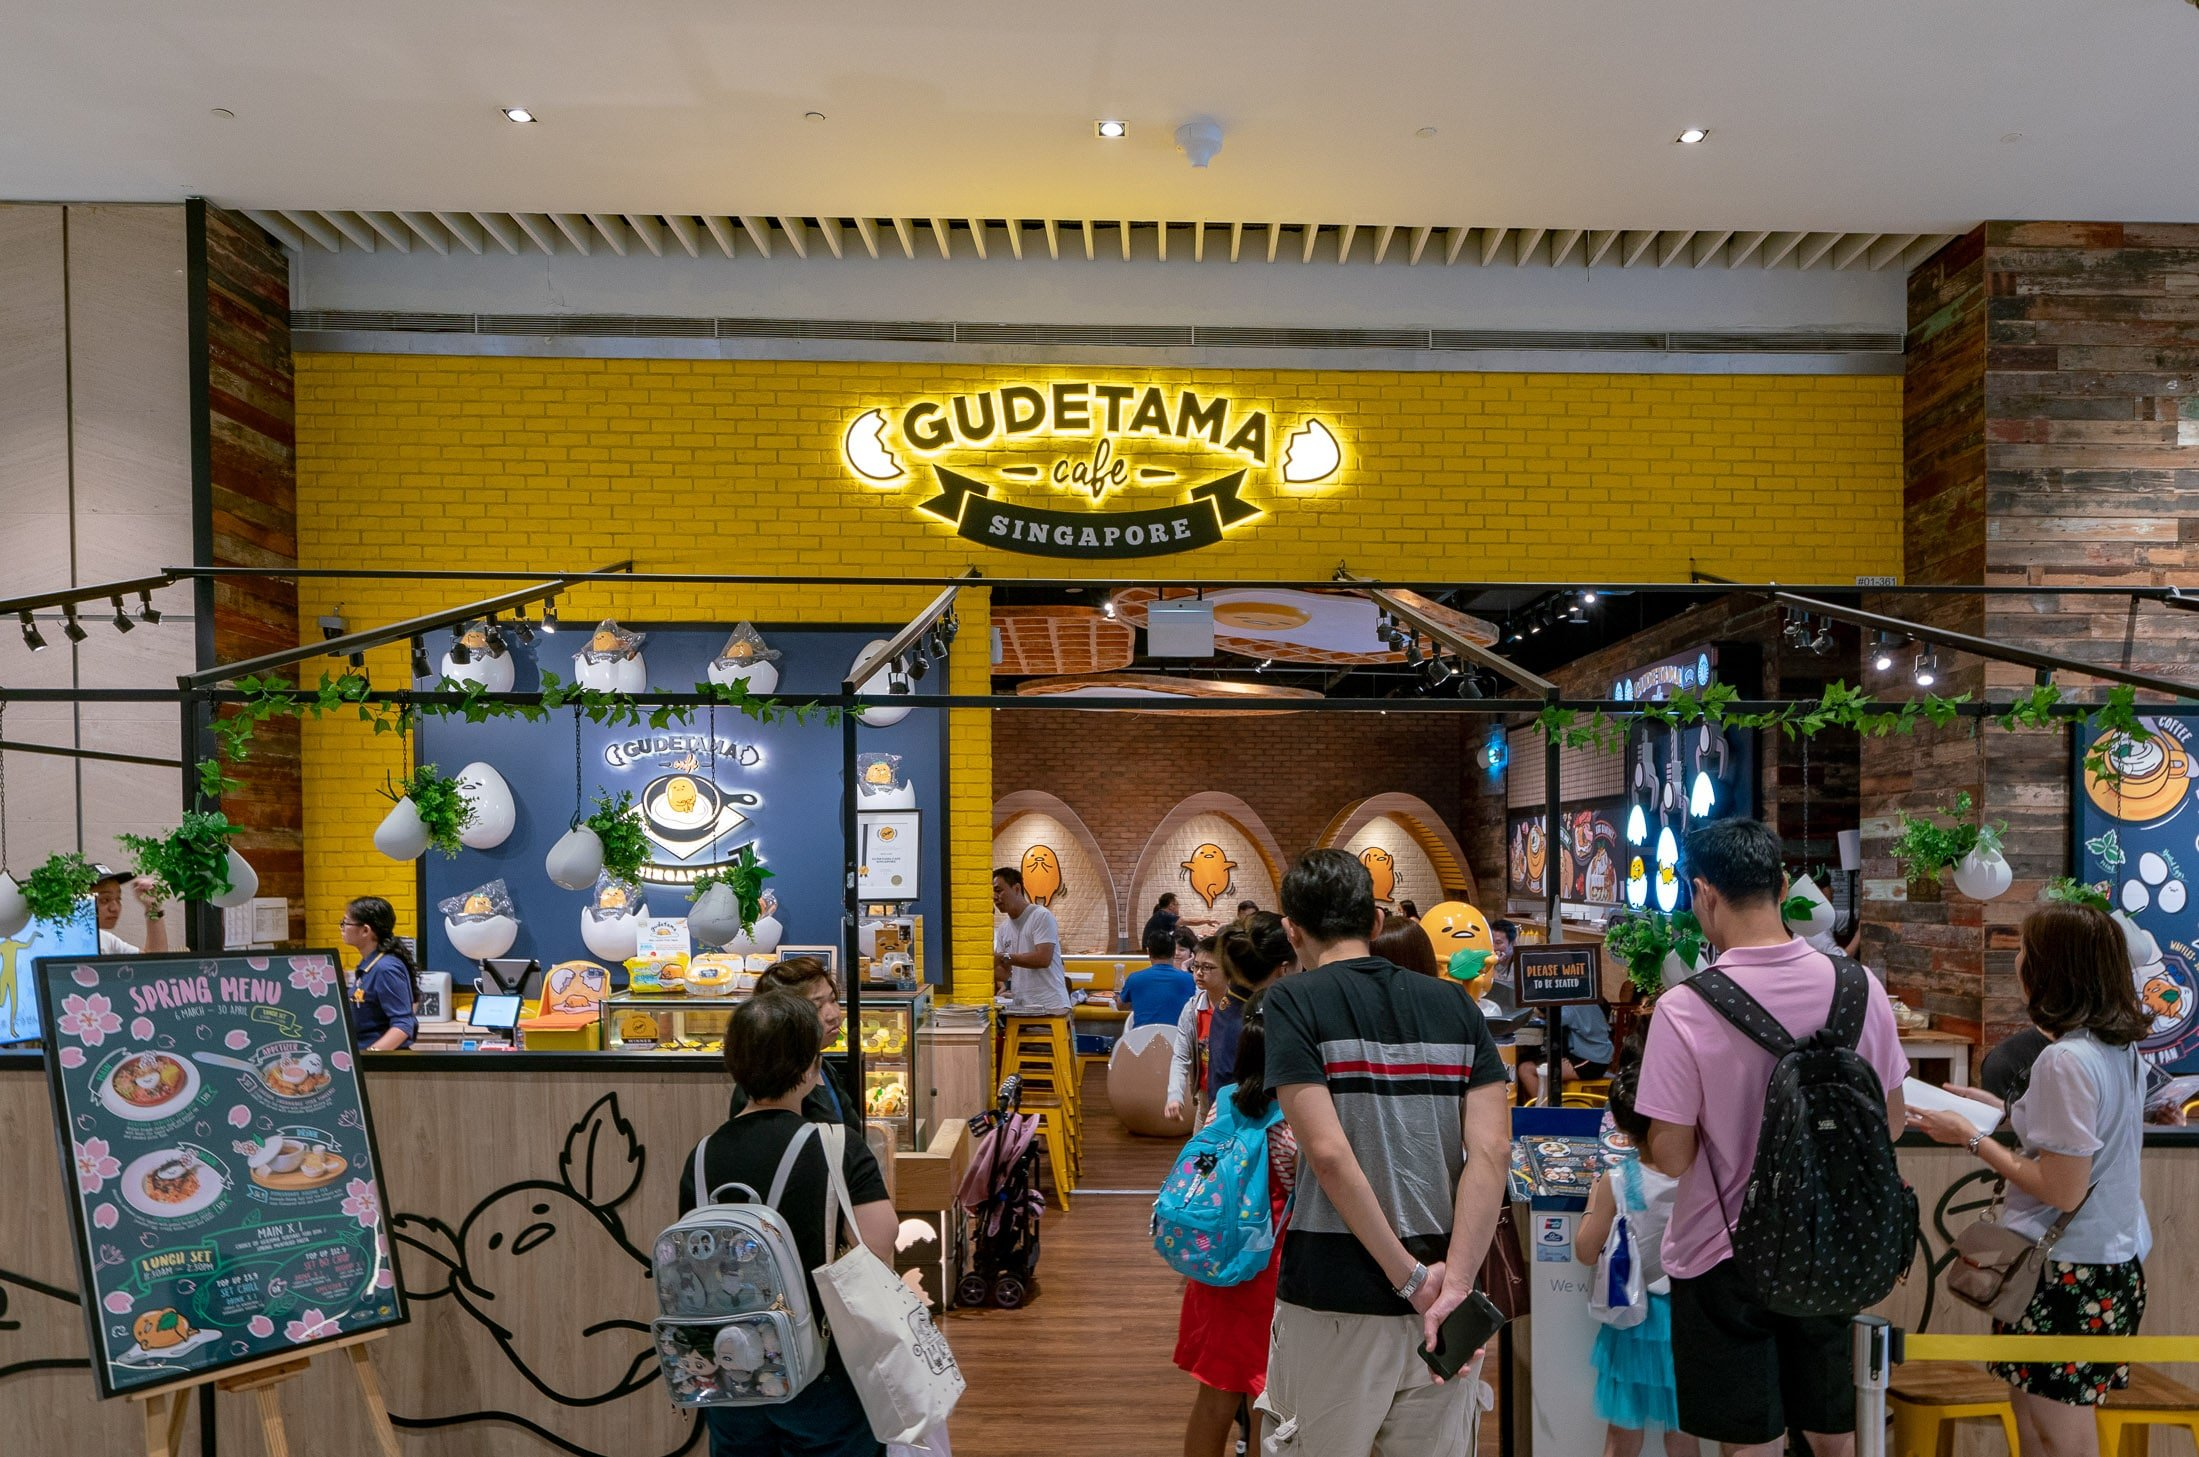 Gudetama Cafe Singapore inside Suntec City mall.